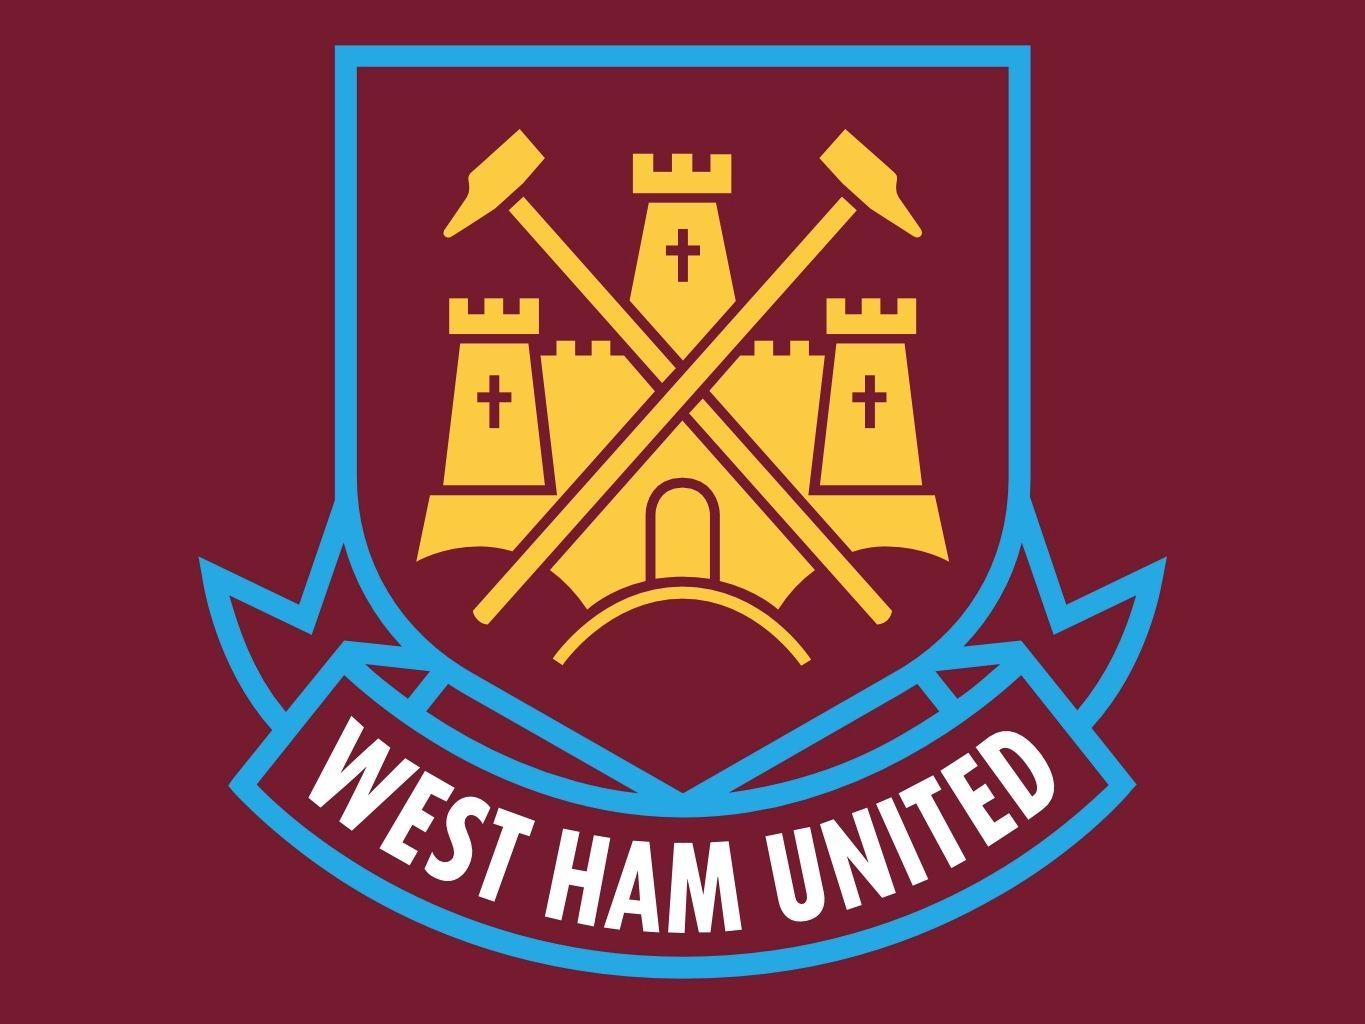 West Ham United F C Wallpapers HD Backgrounds